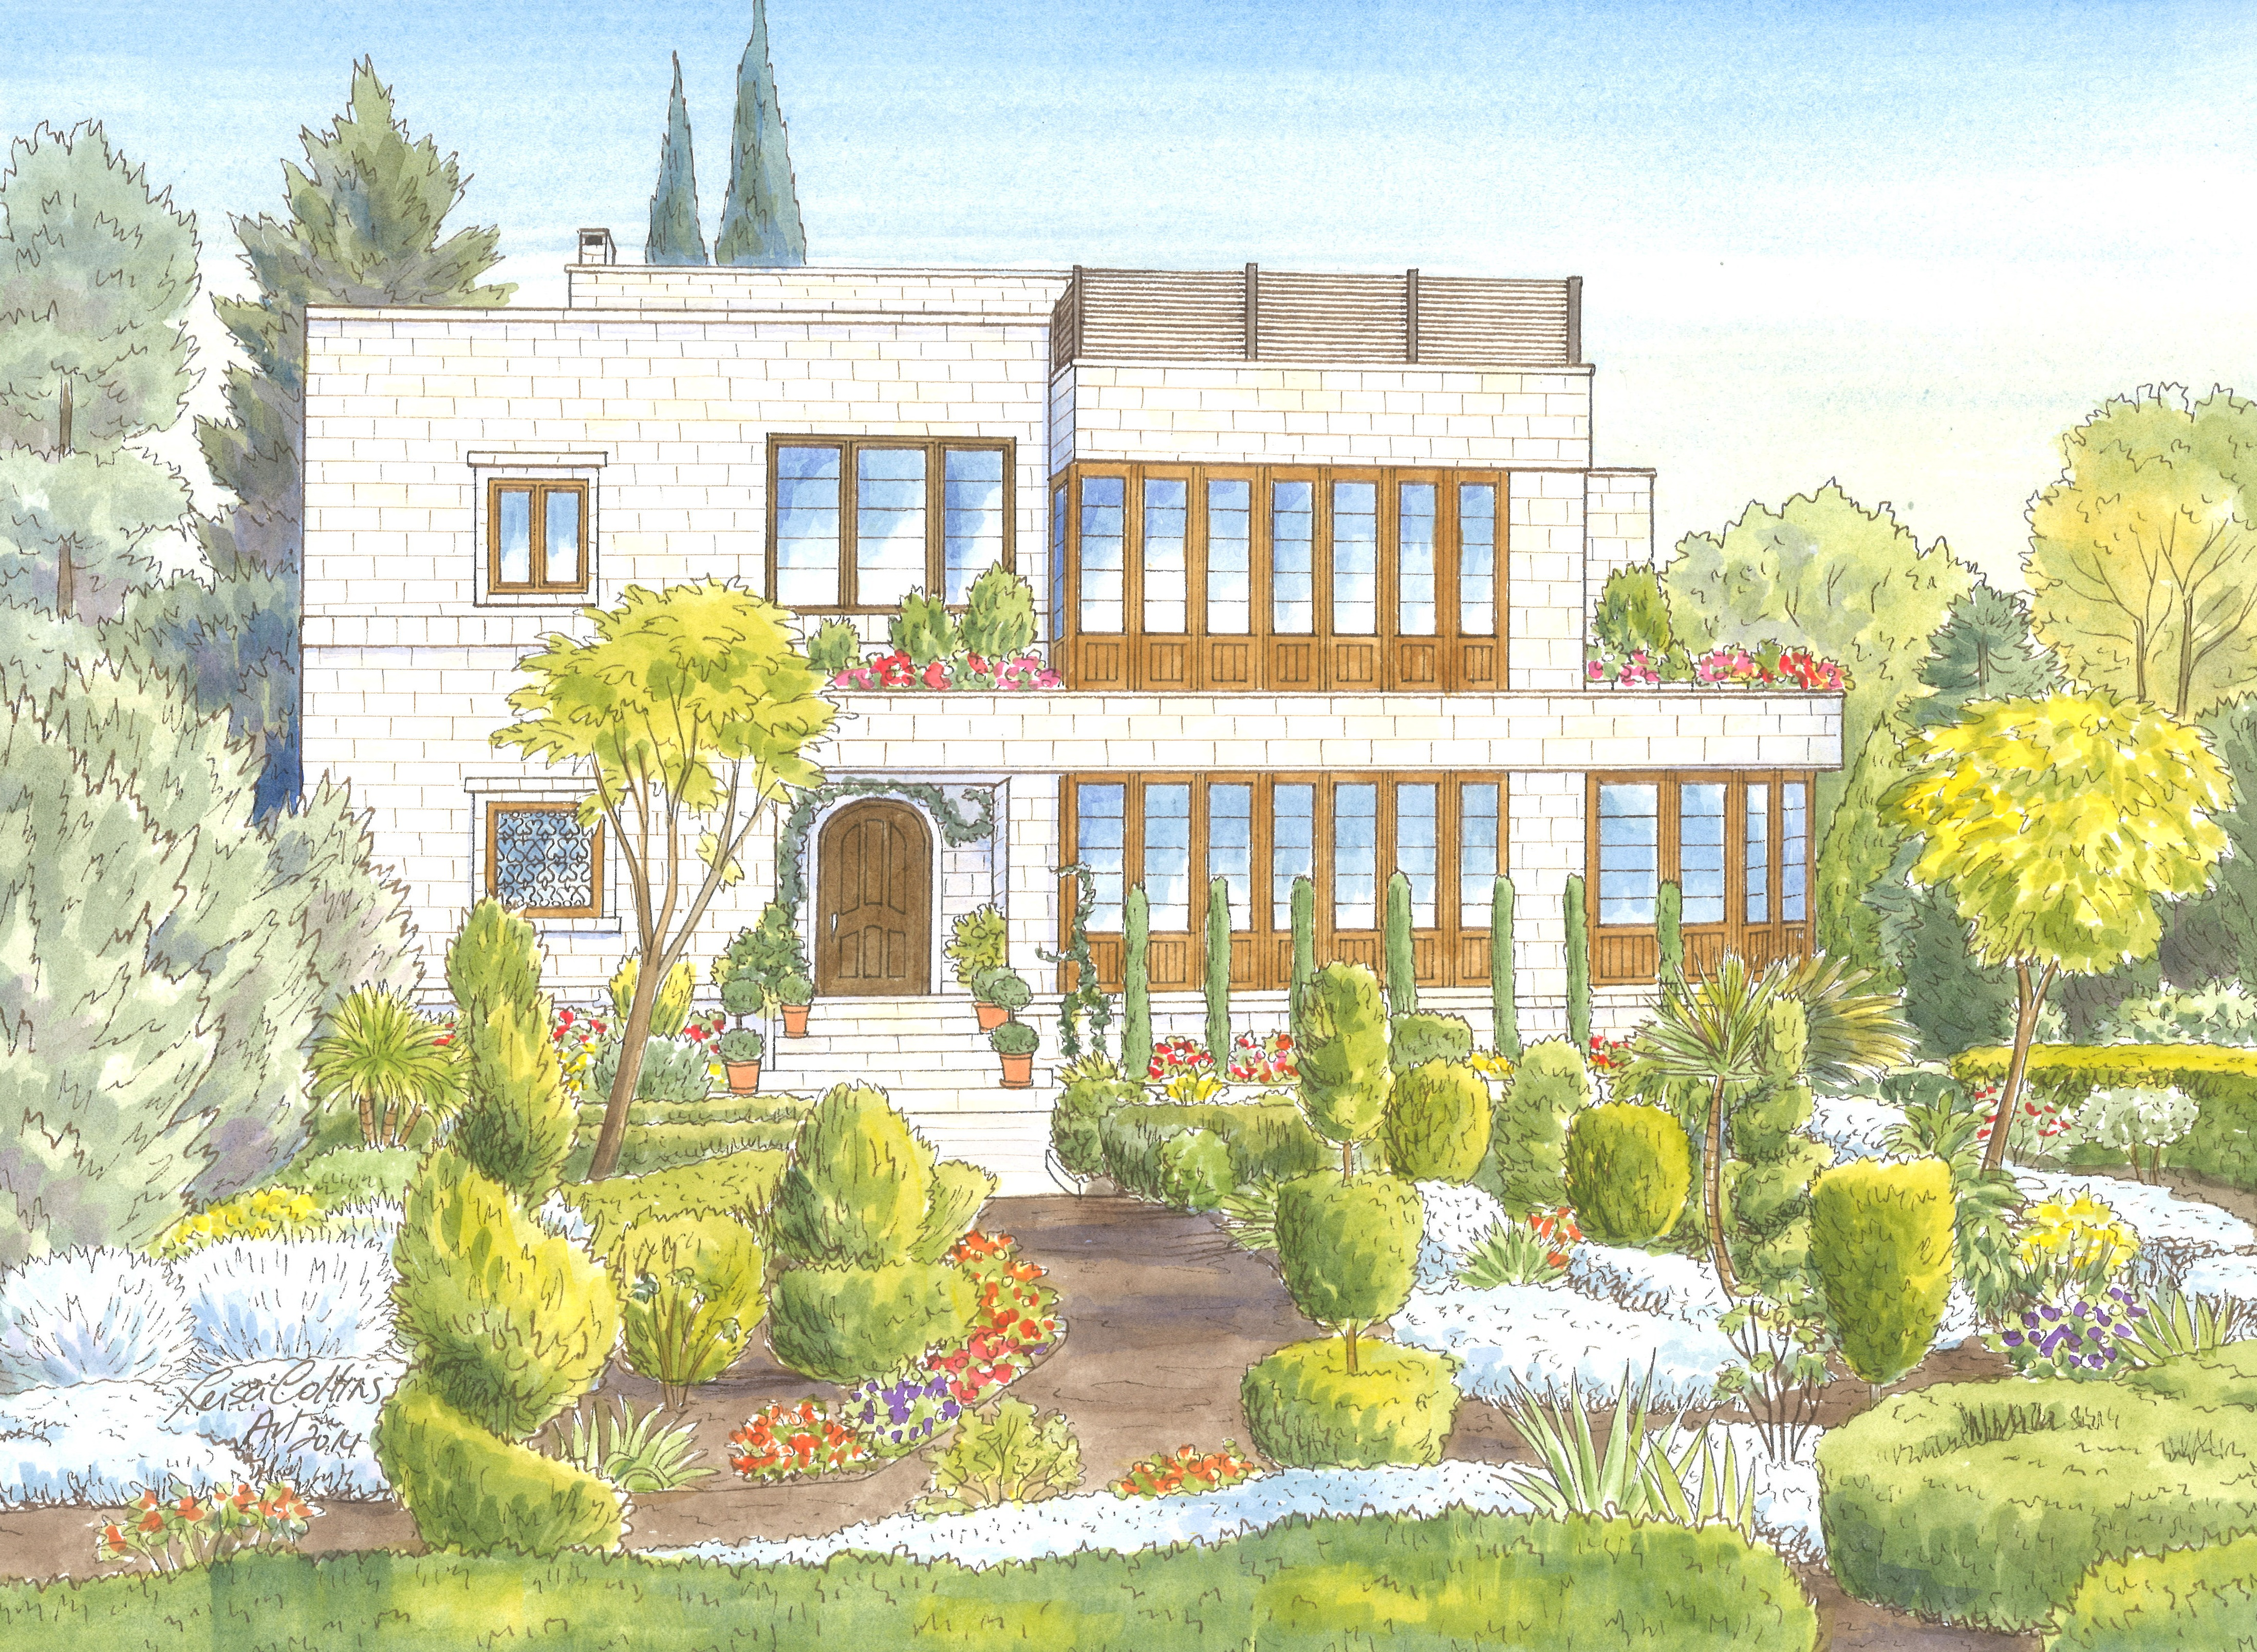 Home-in-Jordan-front.-COMMISSION-for-Dana-Toukan